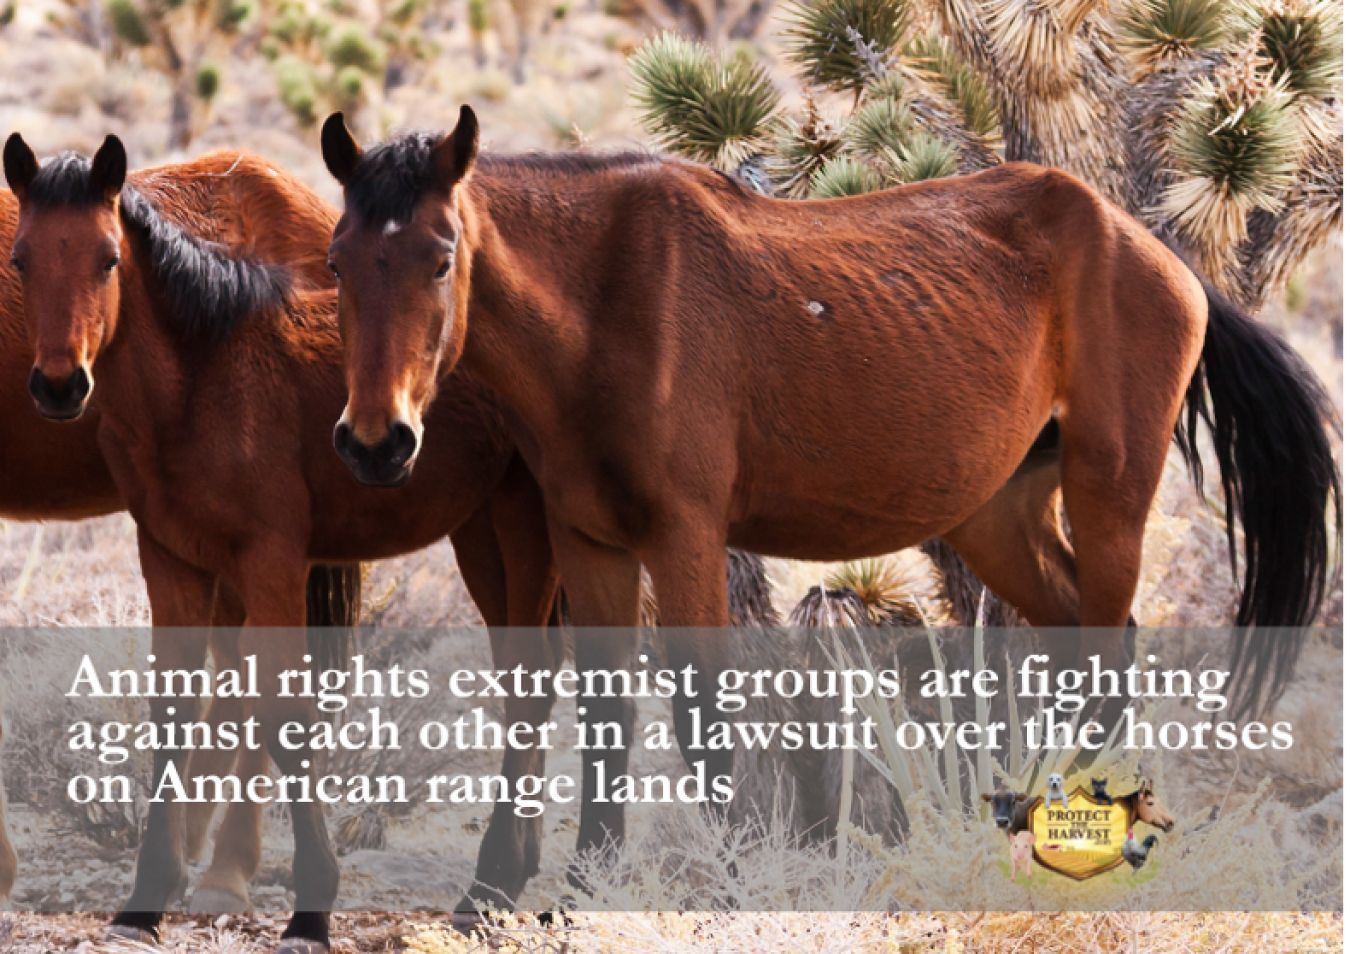 Animal Rights Extremist Groups Fighting Against Each Other in a Lawsuit Over Horses on American Rangelands